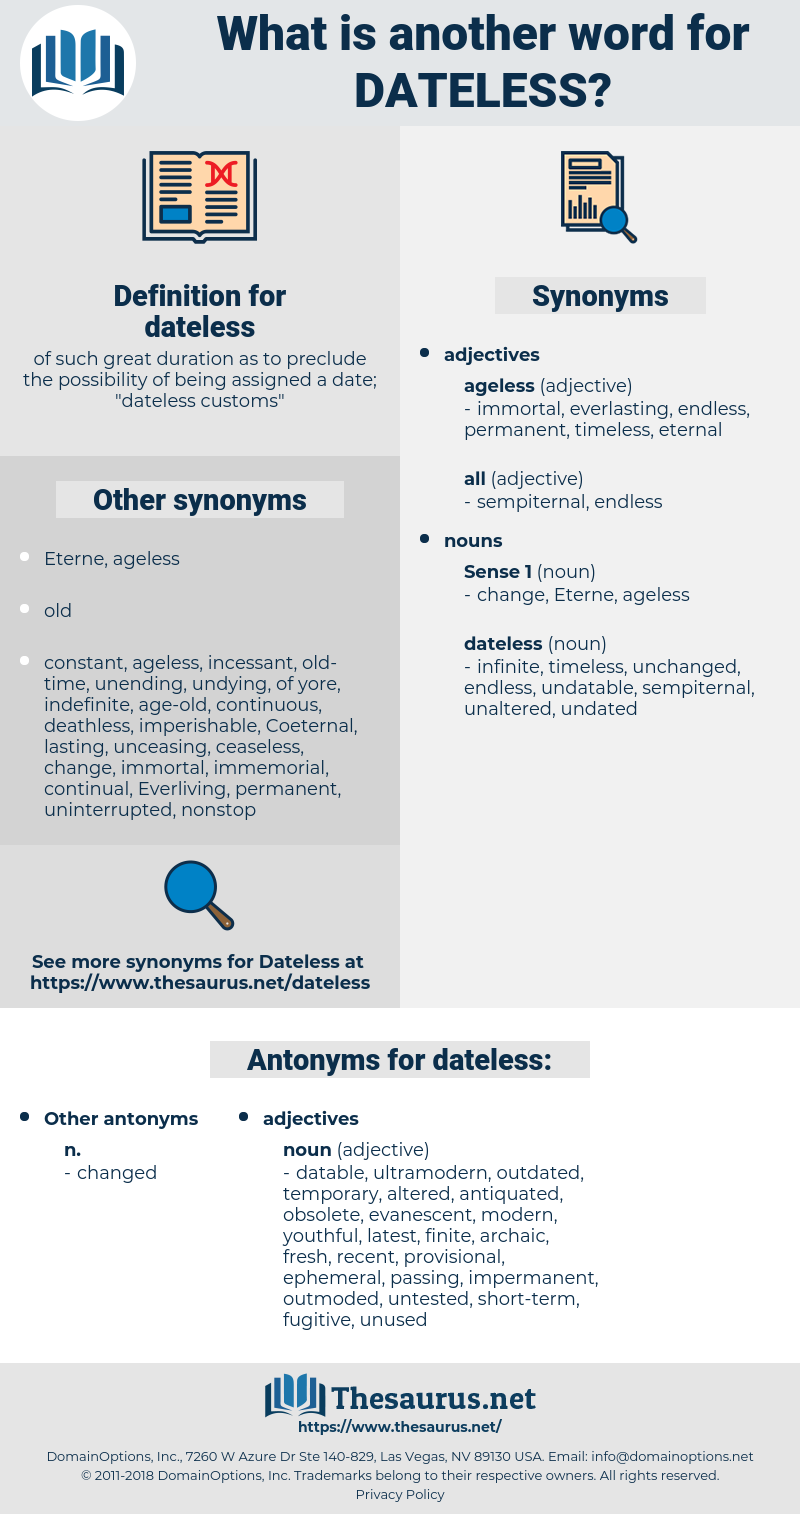 dateless, synonym dateless, another word for dateless, words like dateless, thesaurus dateless